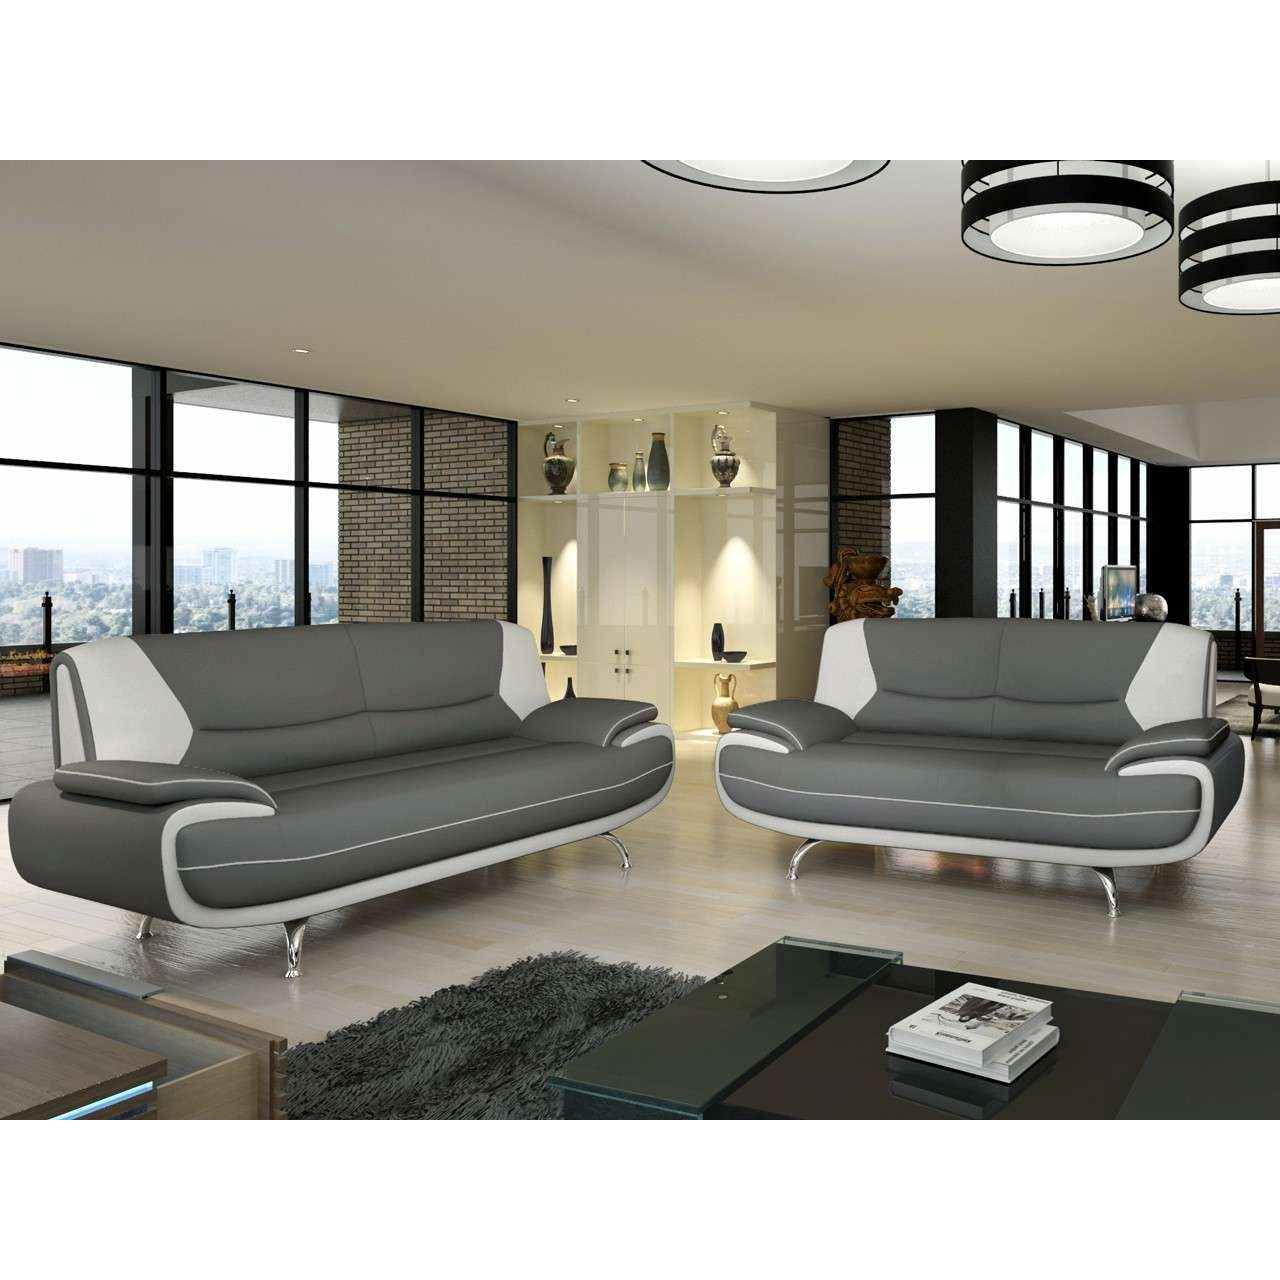 deco in paris canape 2 places design gris et blanc marita marita 2pl gris blanc. Black Bedroom Furniture Sets. Home Design Ideas